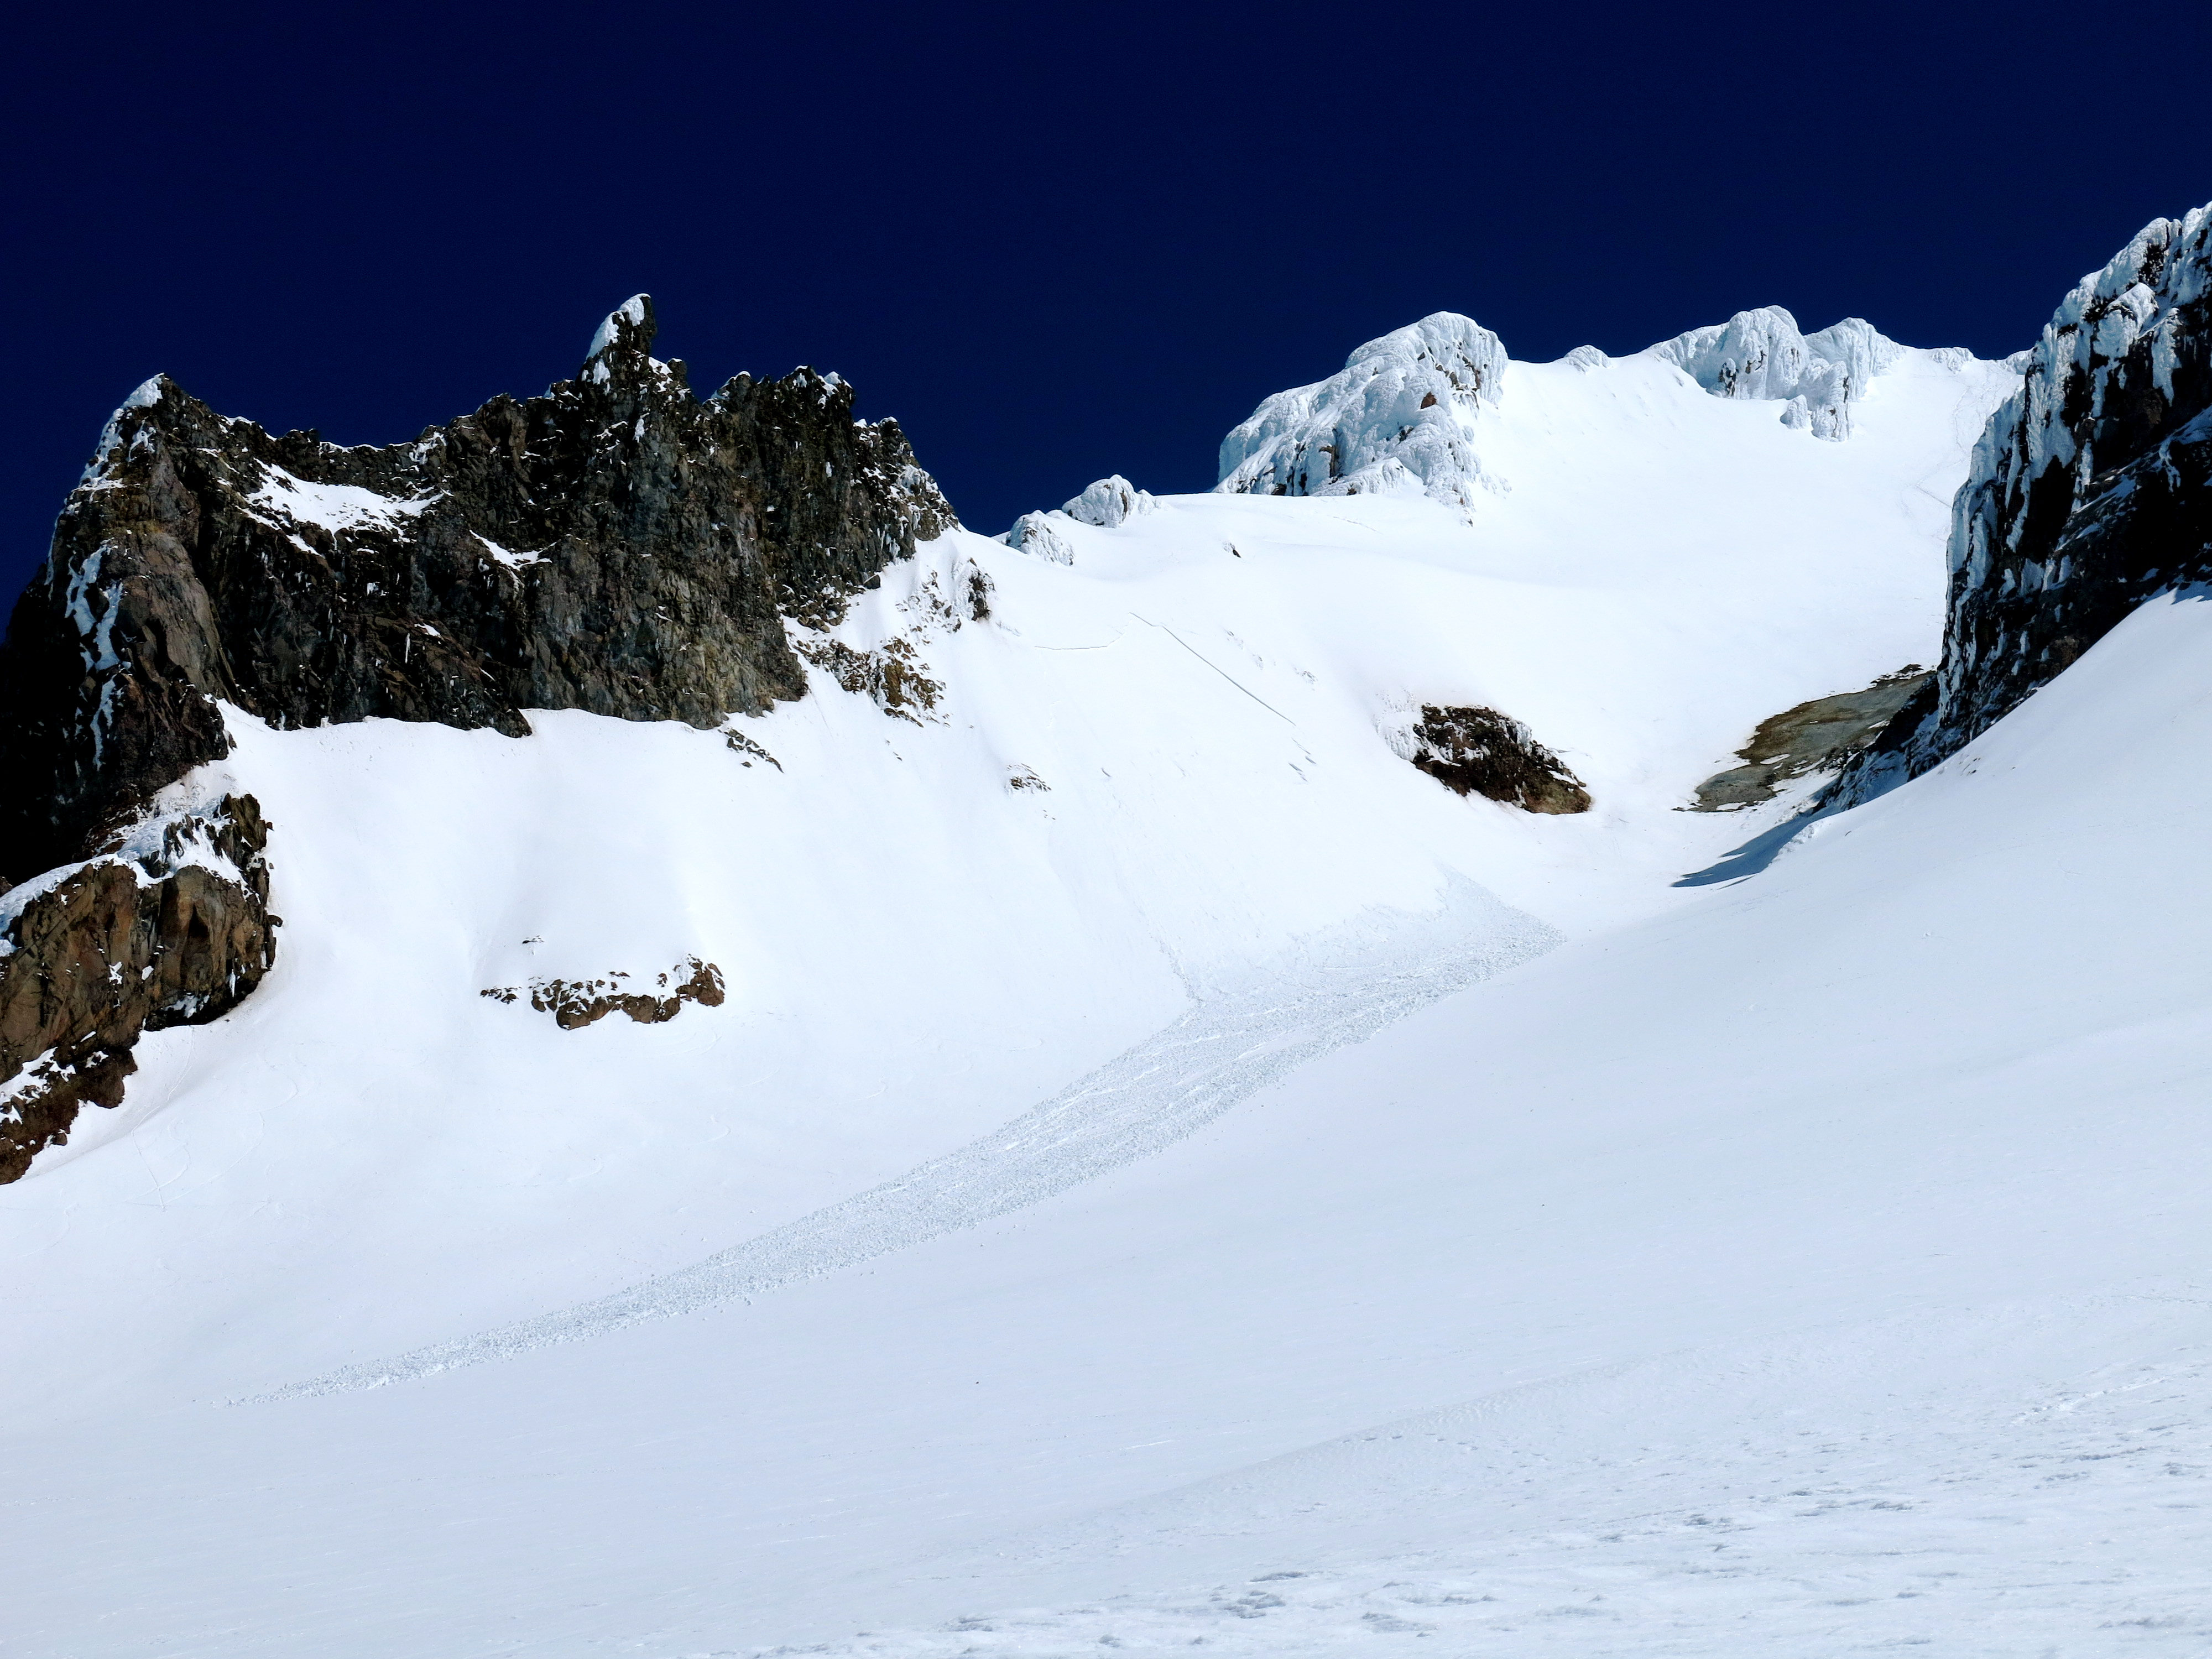 Climbing Mt. Hood in spring and summer: Will you carry avalanche safety gear?